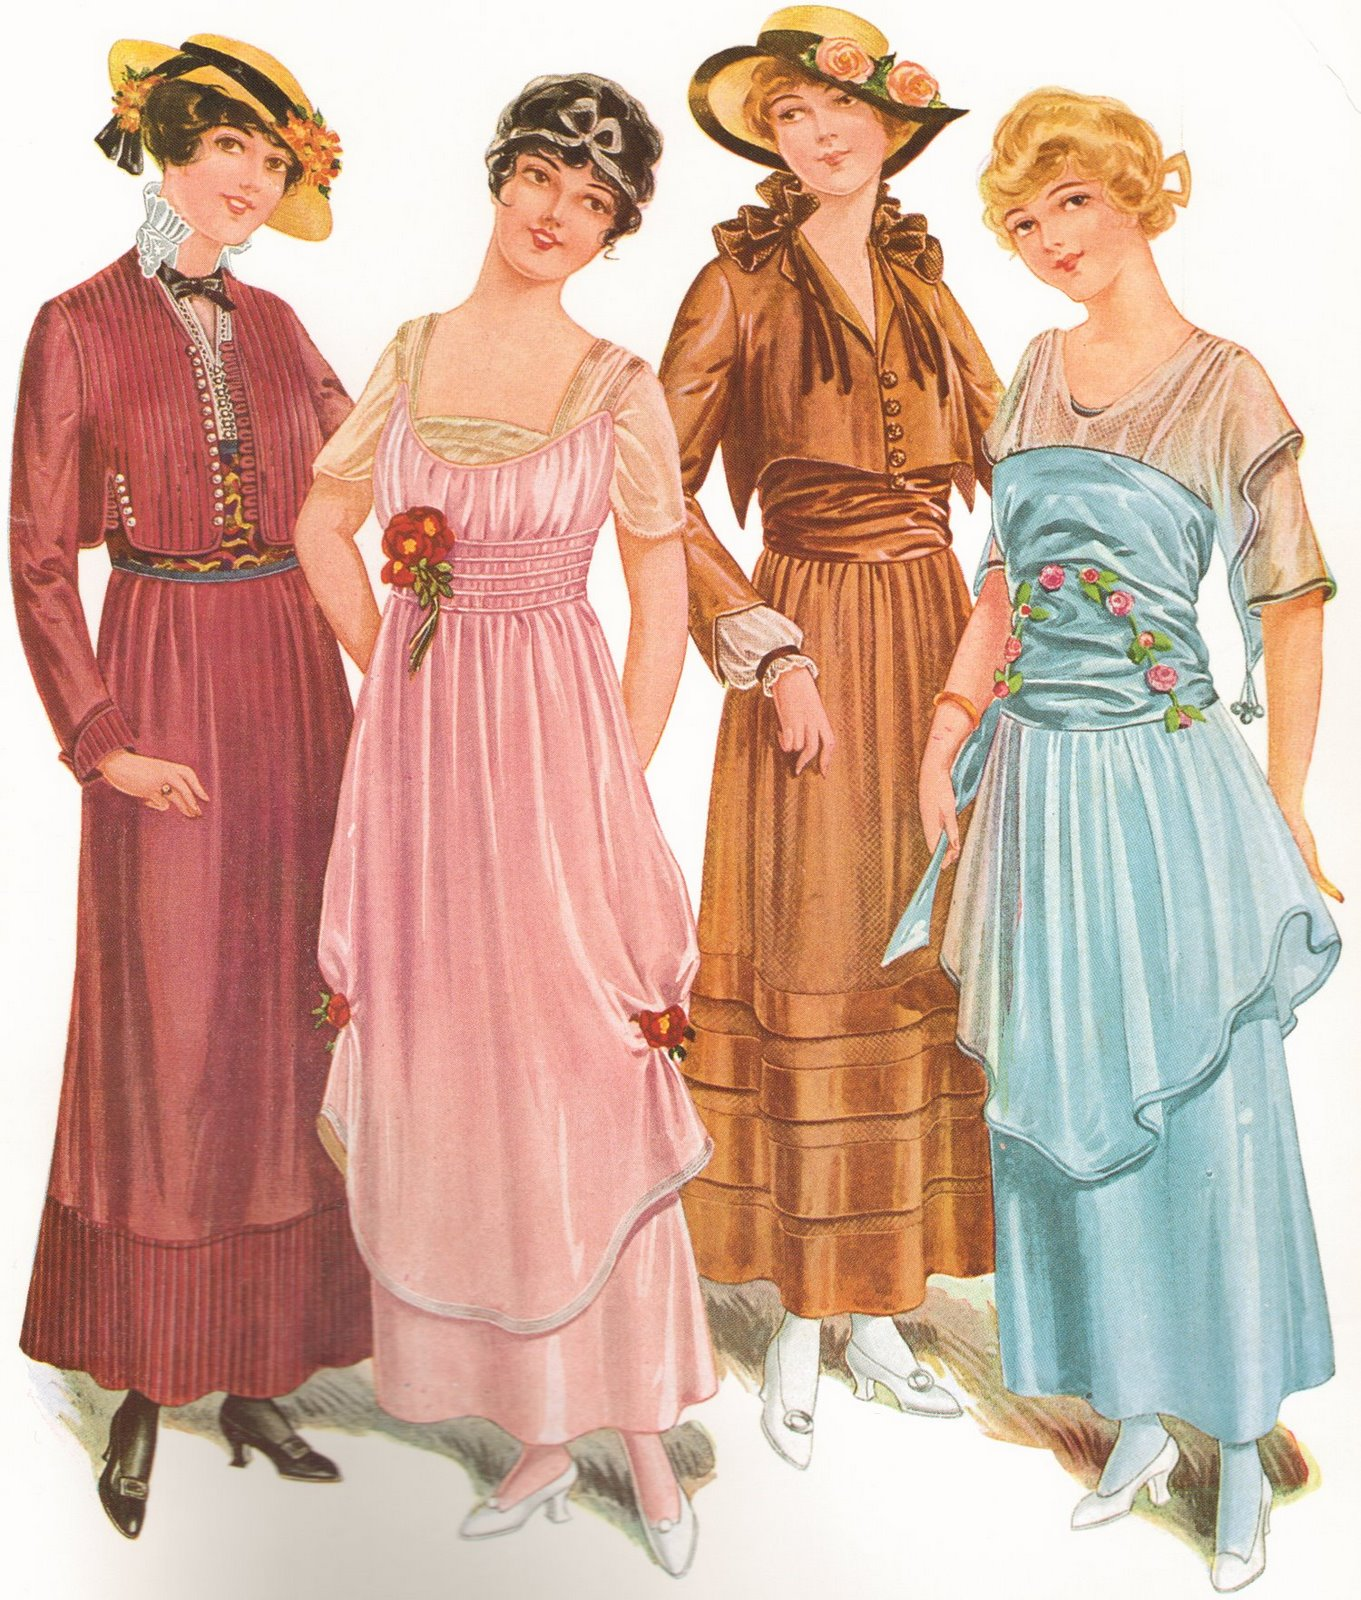 From A 1915 Gimbels Fashion Magazine Courtesy The Blog Historically Romantic